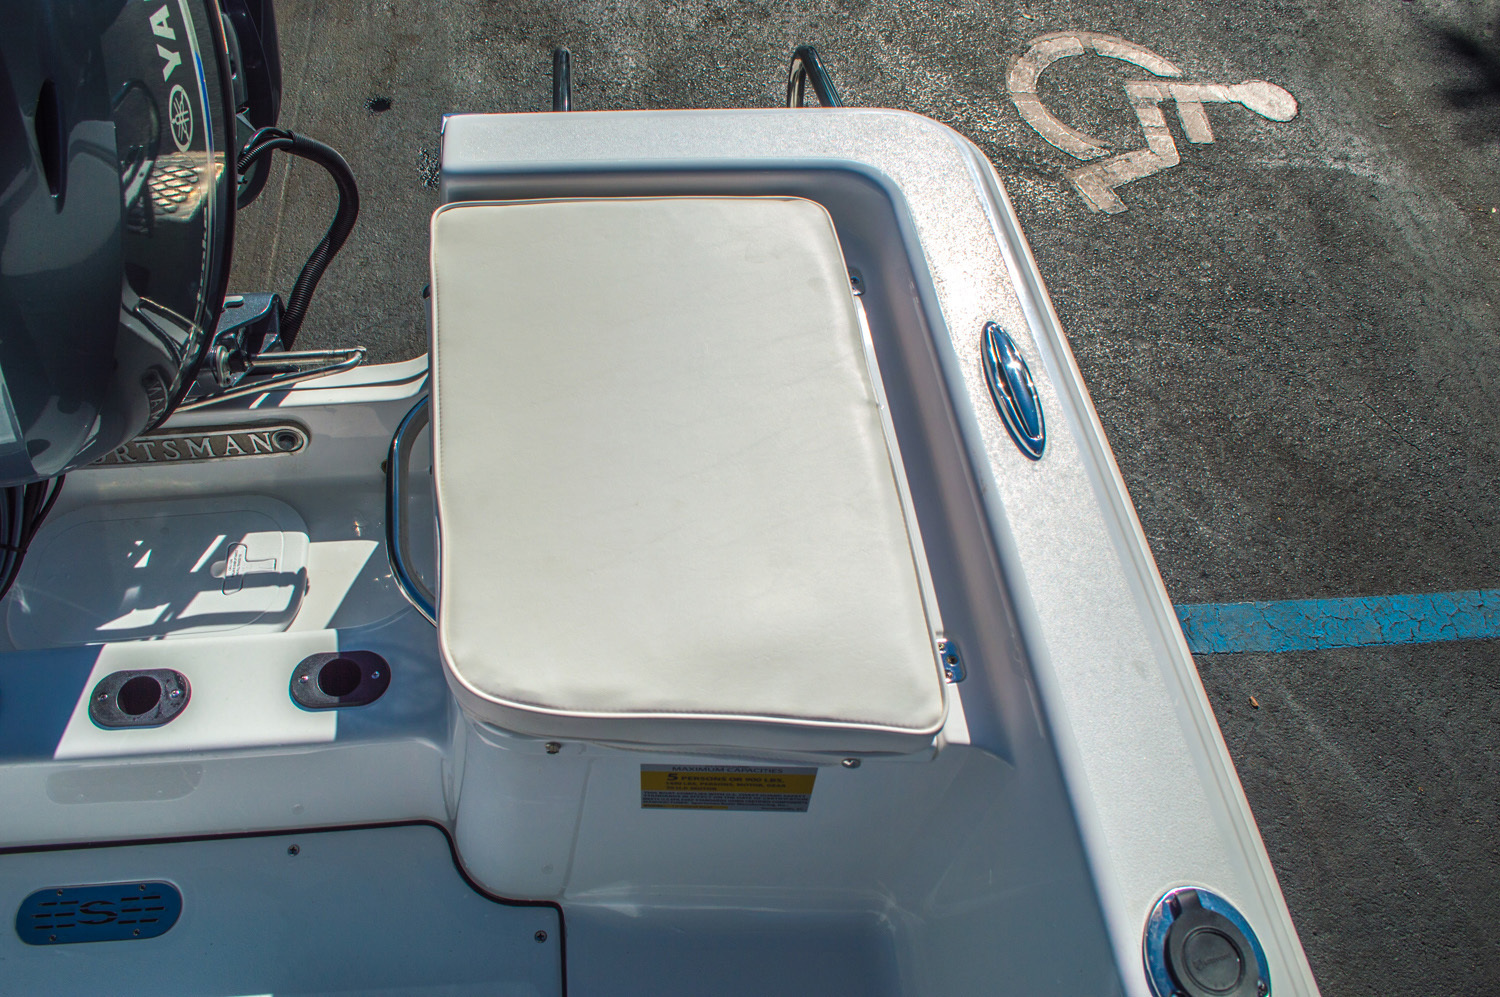 Thumbnail 15 for New 2016 Sportsman 17 Island Reef boat for sale in West Palm Beach, FL